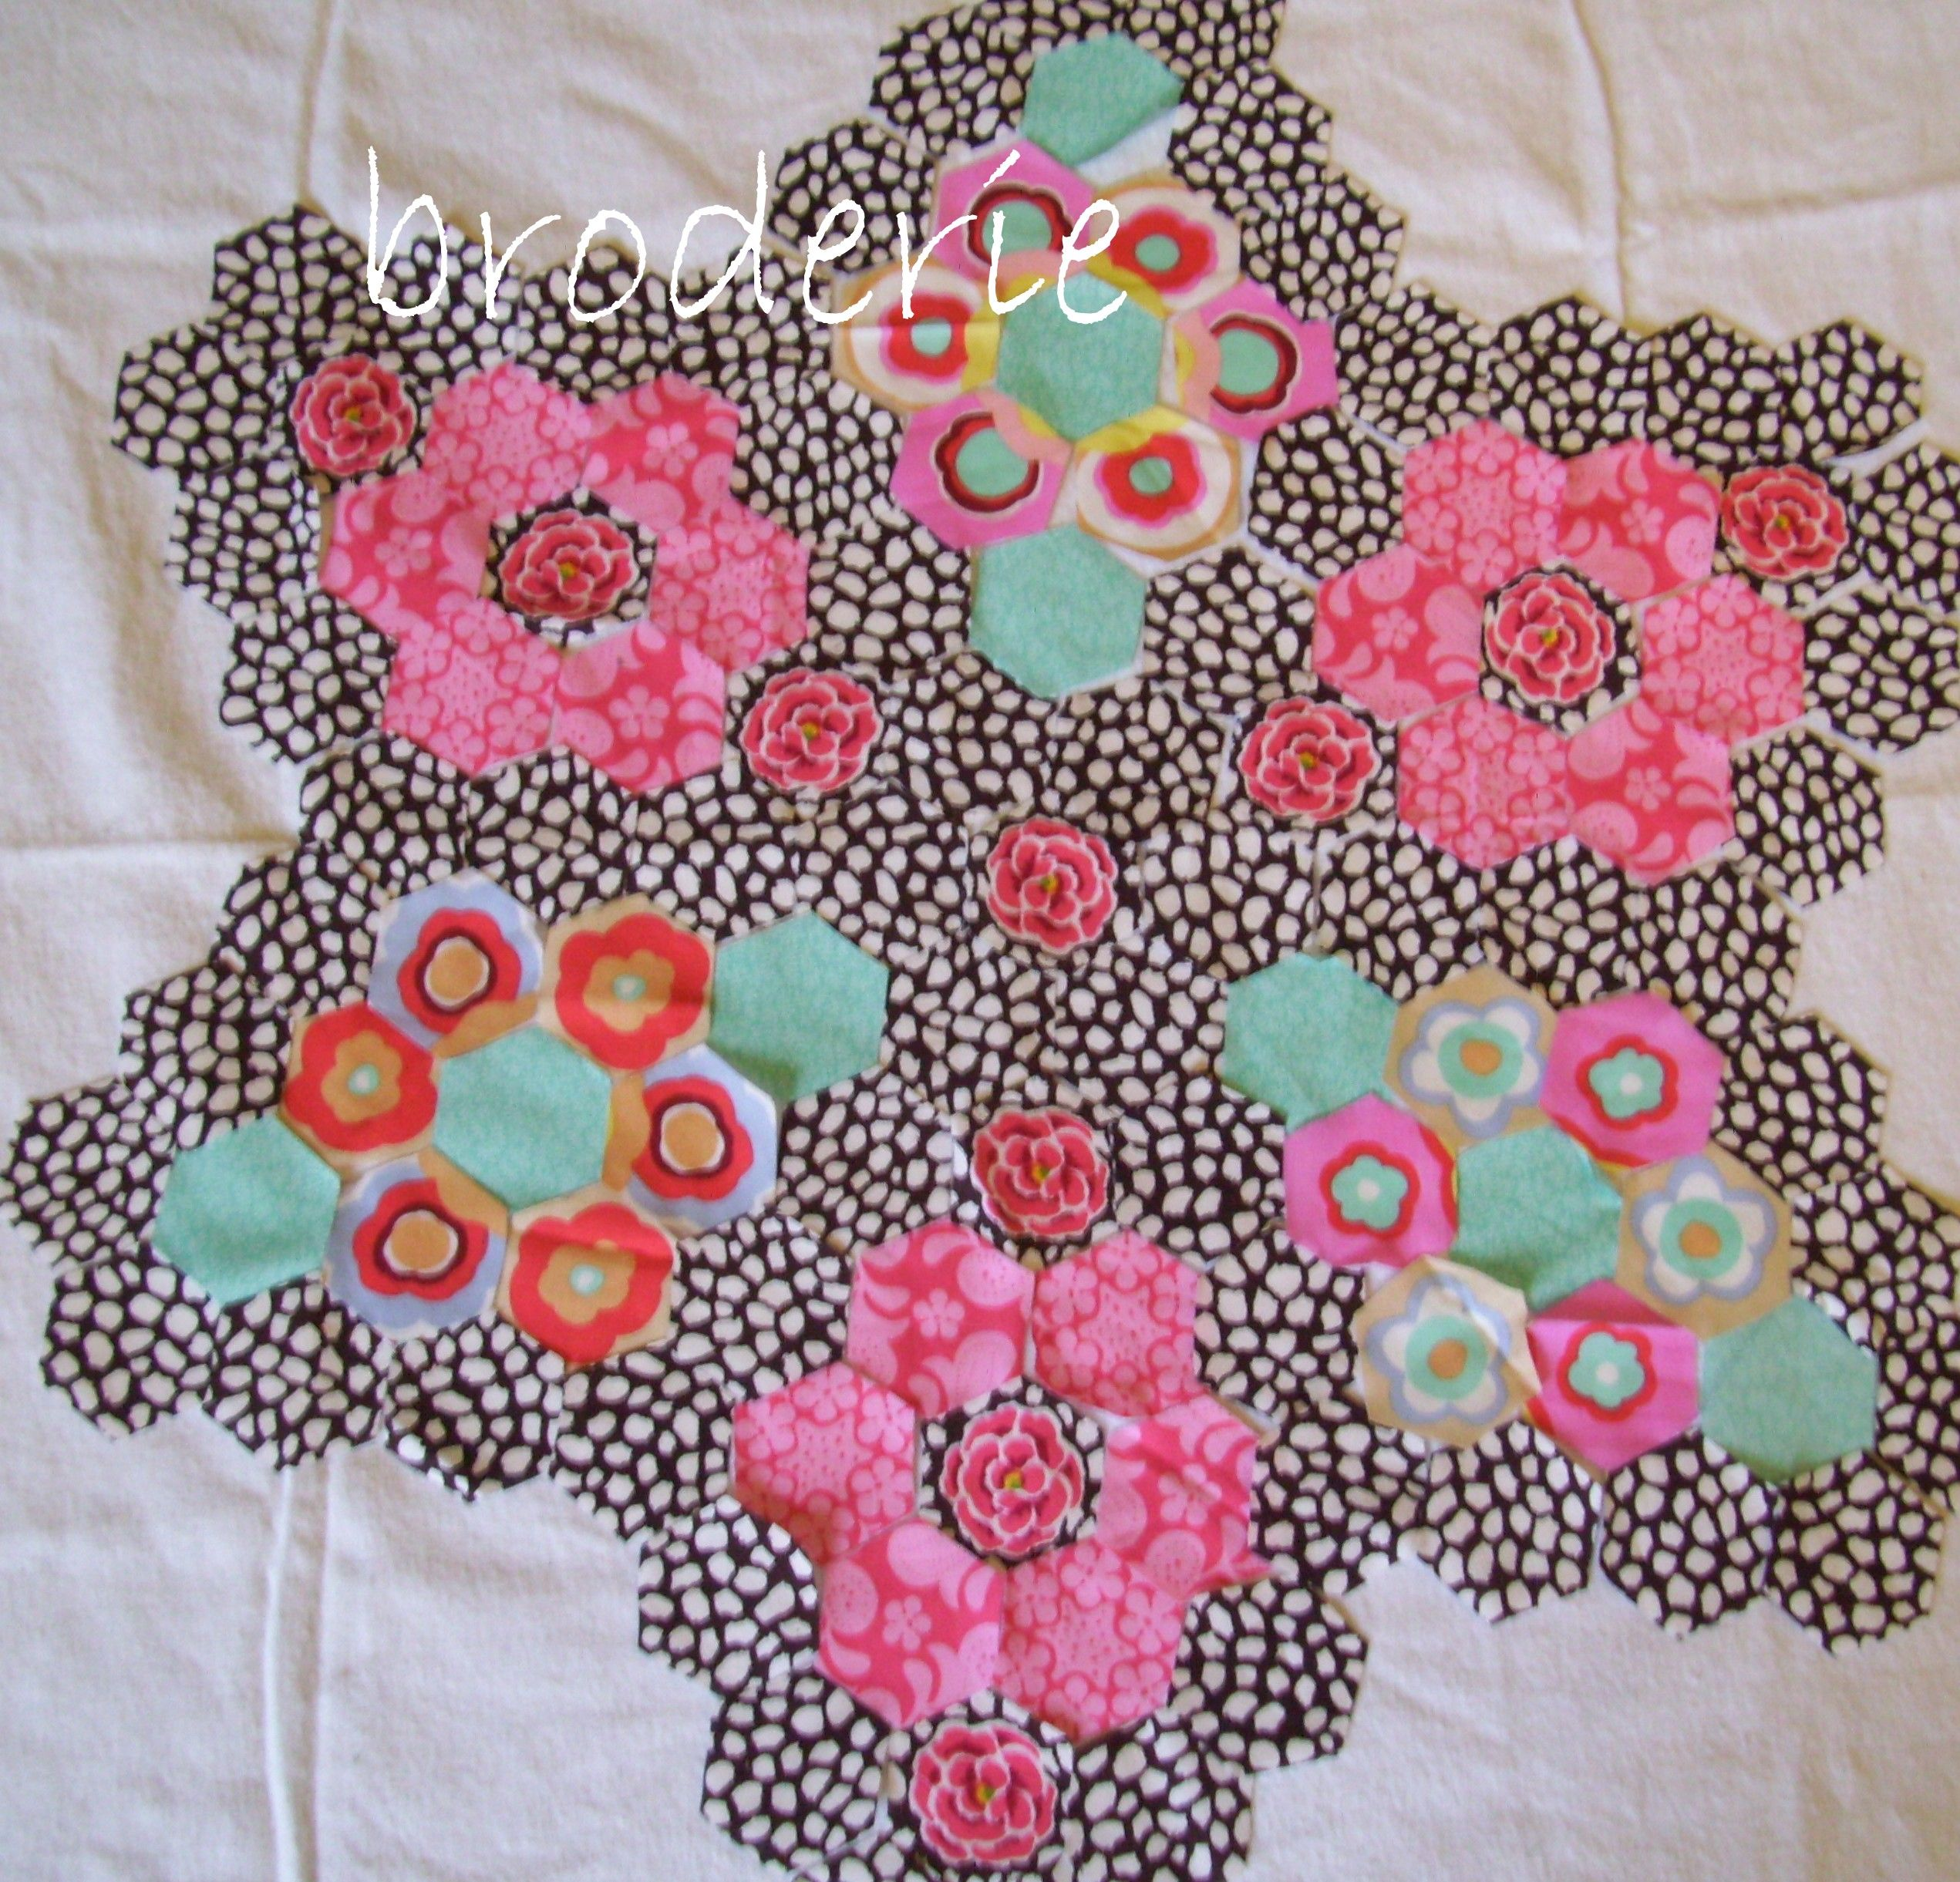 ♥ this pattern and color choice crafty bits